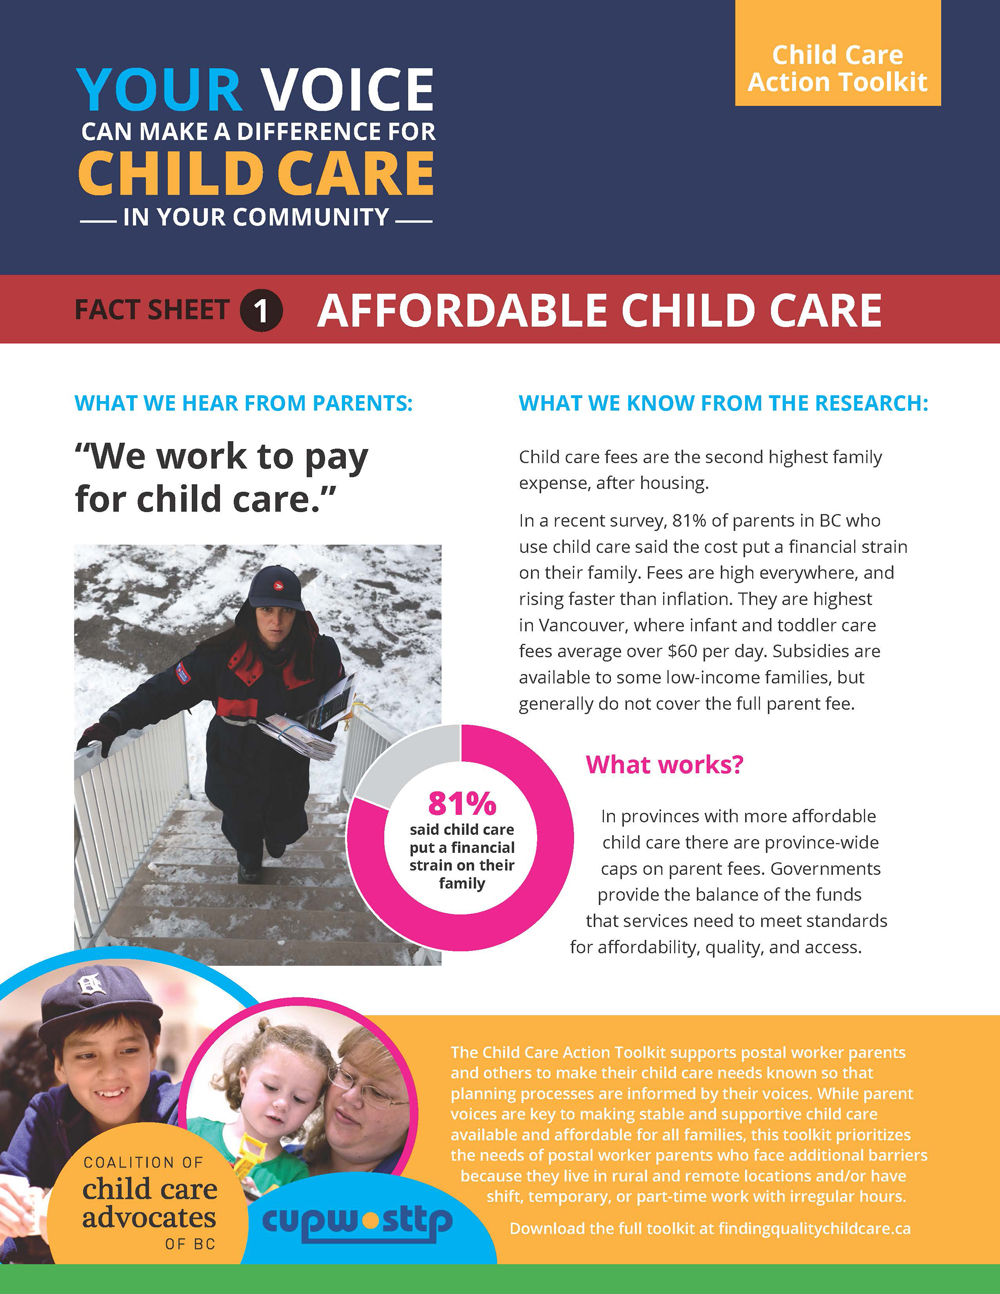 Fact Sheet 1: Affordable Child Care